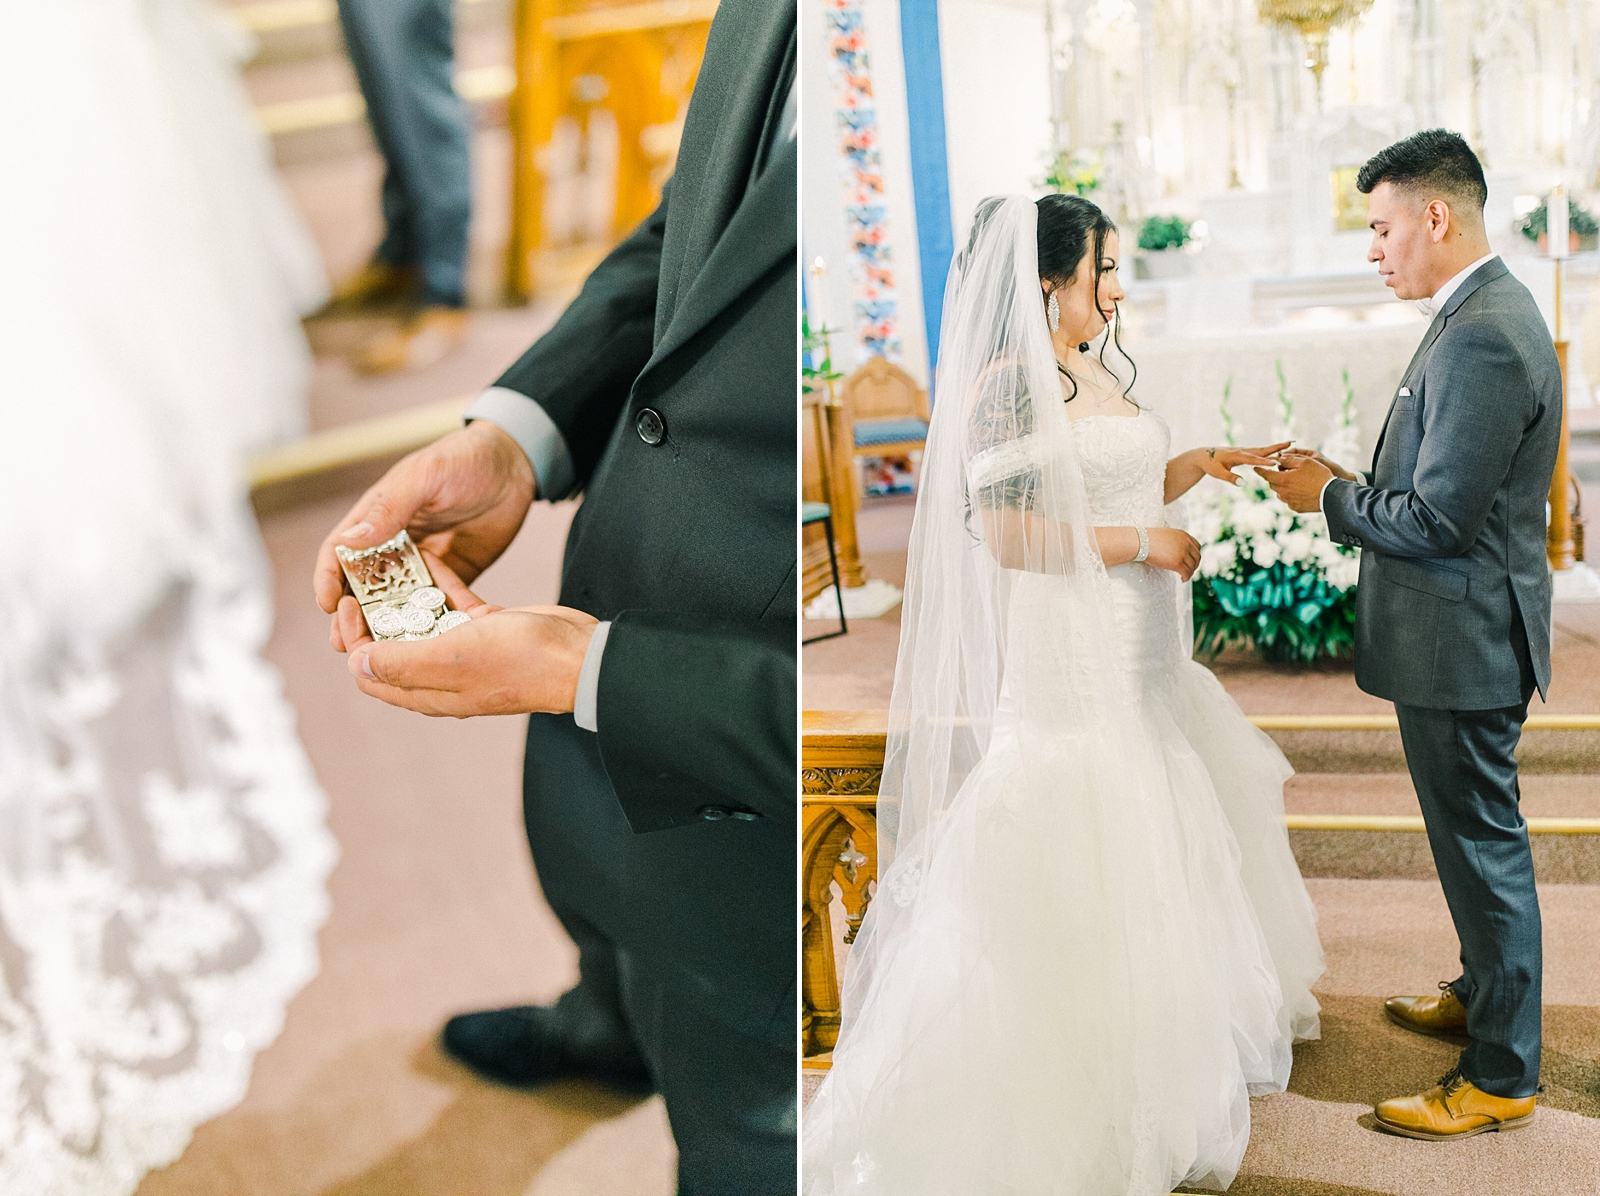 Cache Valley Logan Traditional Catholic Wedding Ceremony in a cathedral, Utah wedding photography, ring exchange